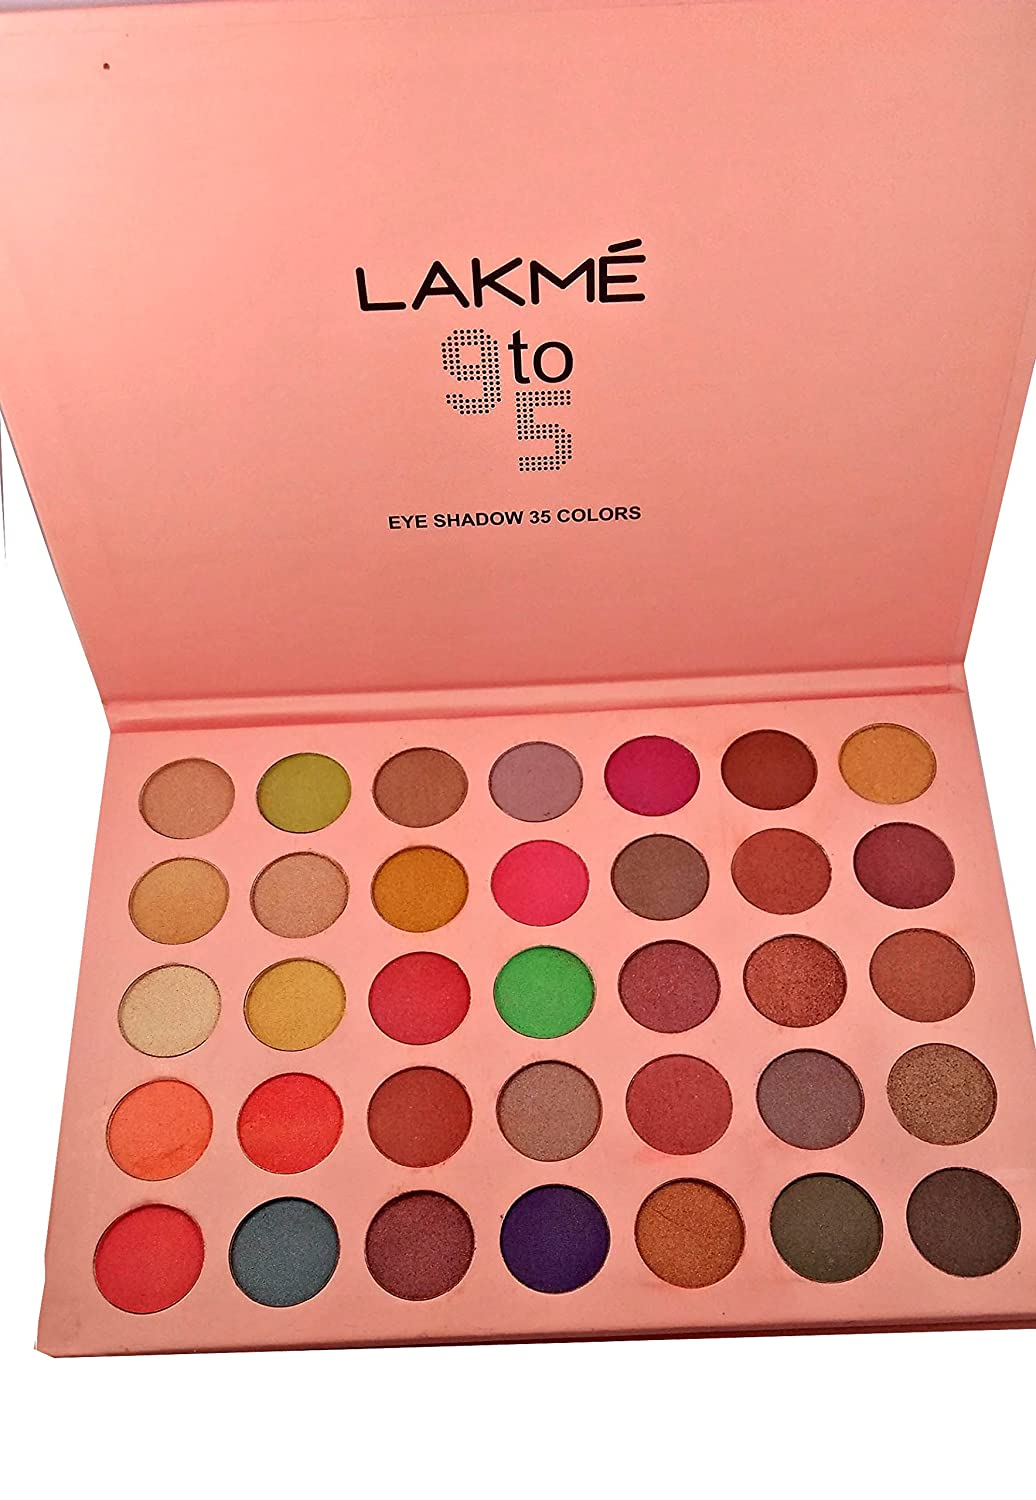 Buy Lakme 9 TO 5 Makeup Kit Colorfull Dazzling Shine 48 Colors of Eyeshadow, 3-Colors Blusher and One Color Compact Powder Cake Online at Low Prices in ...